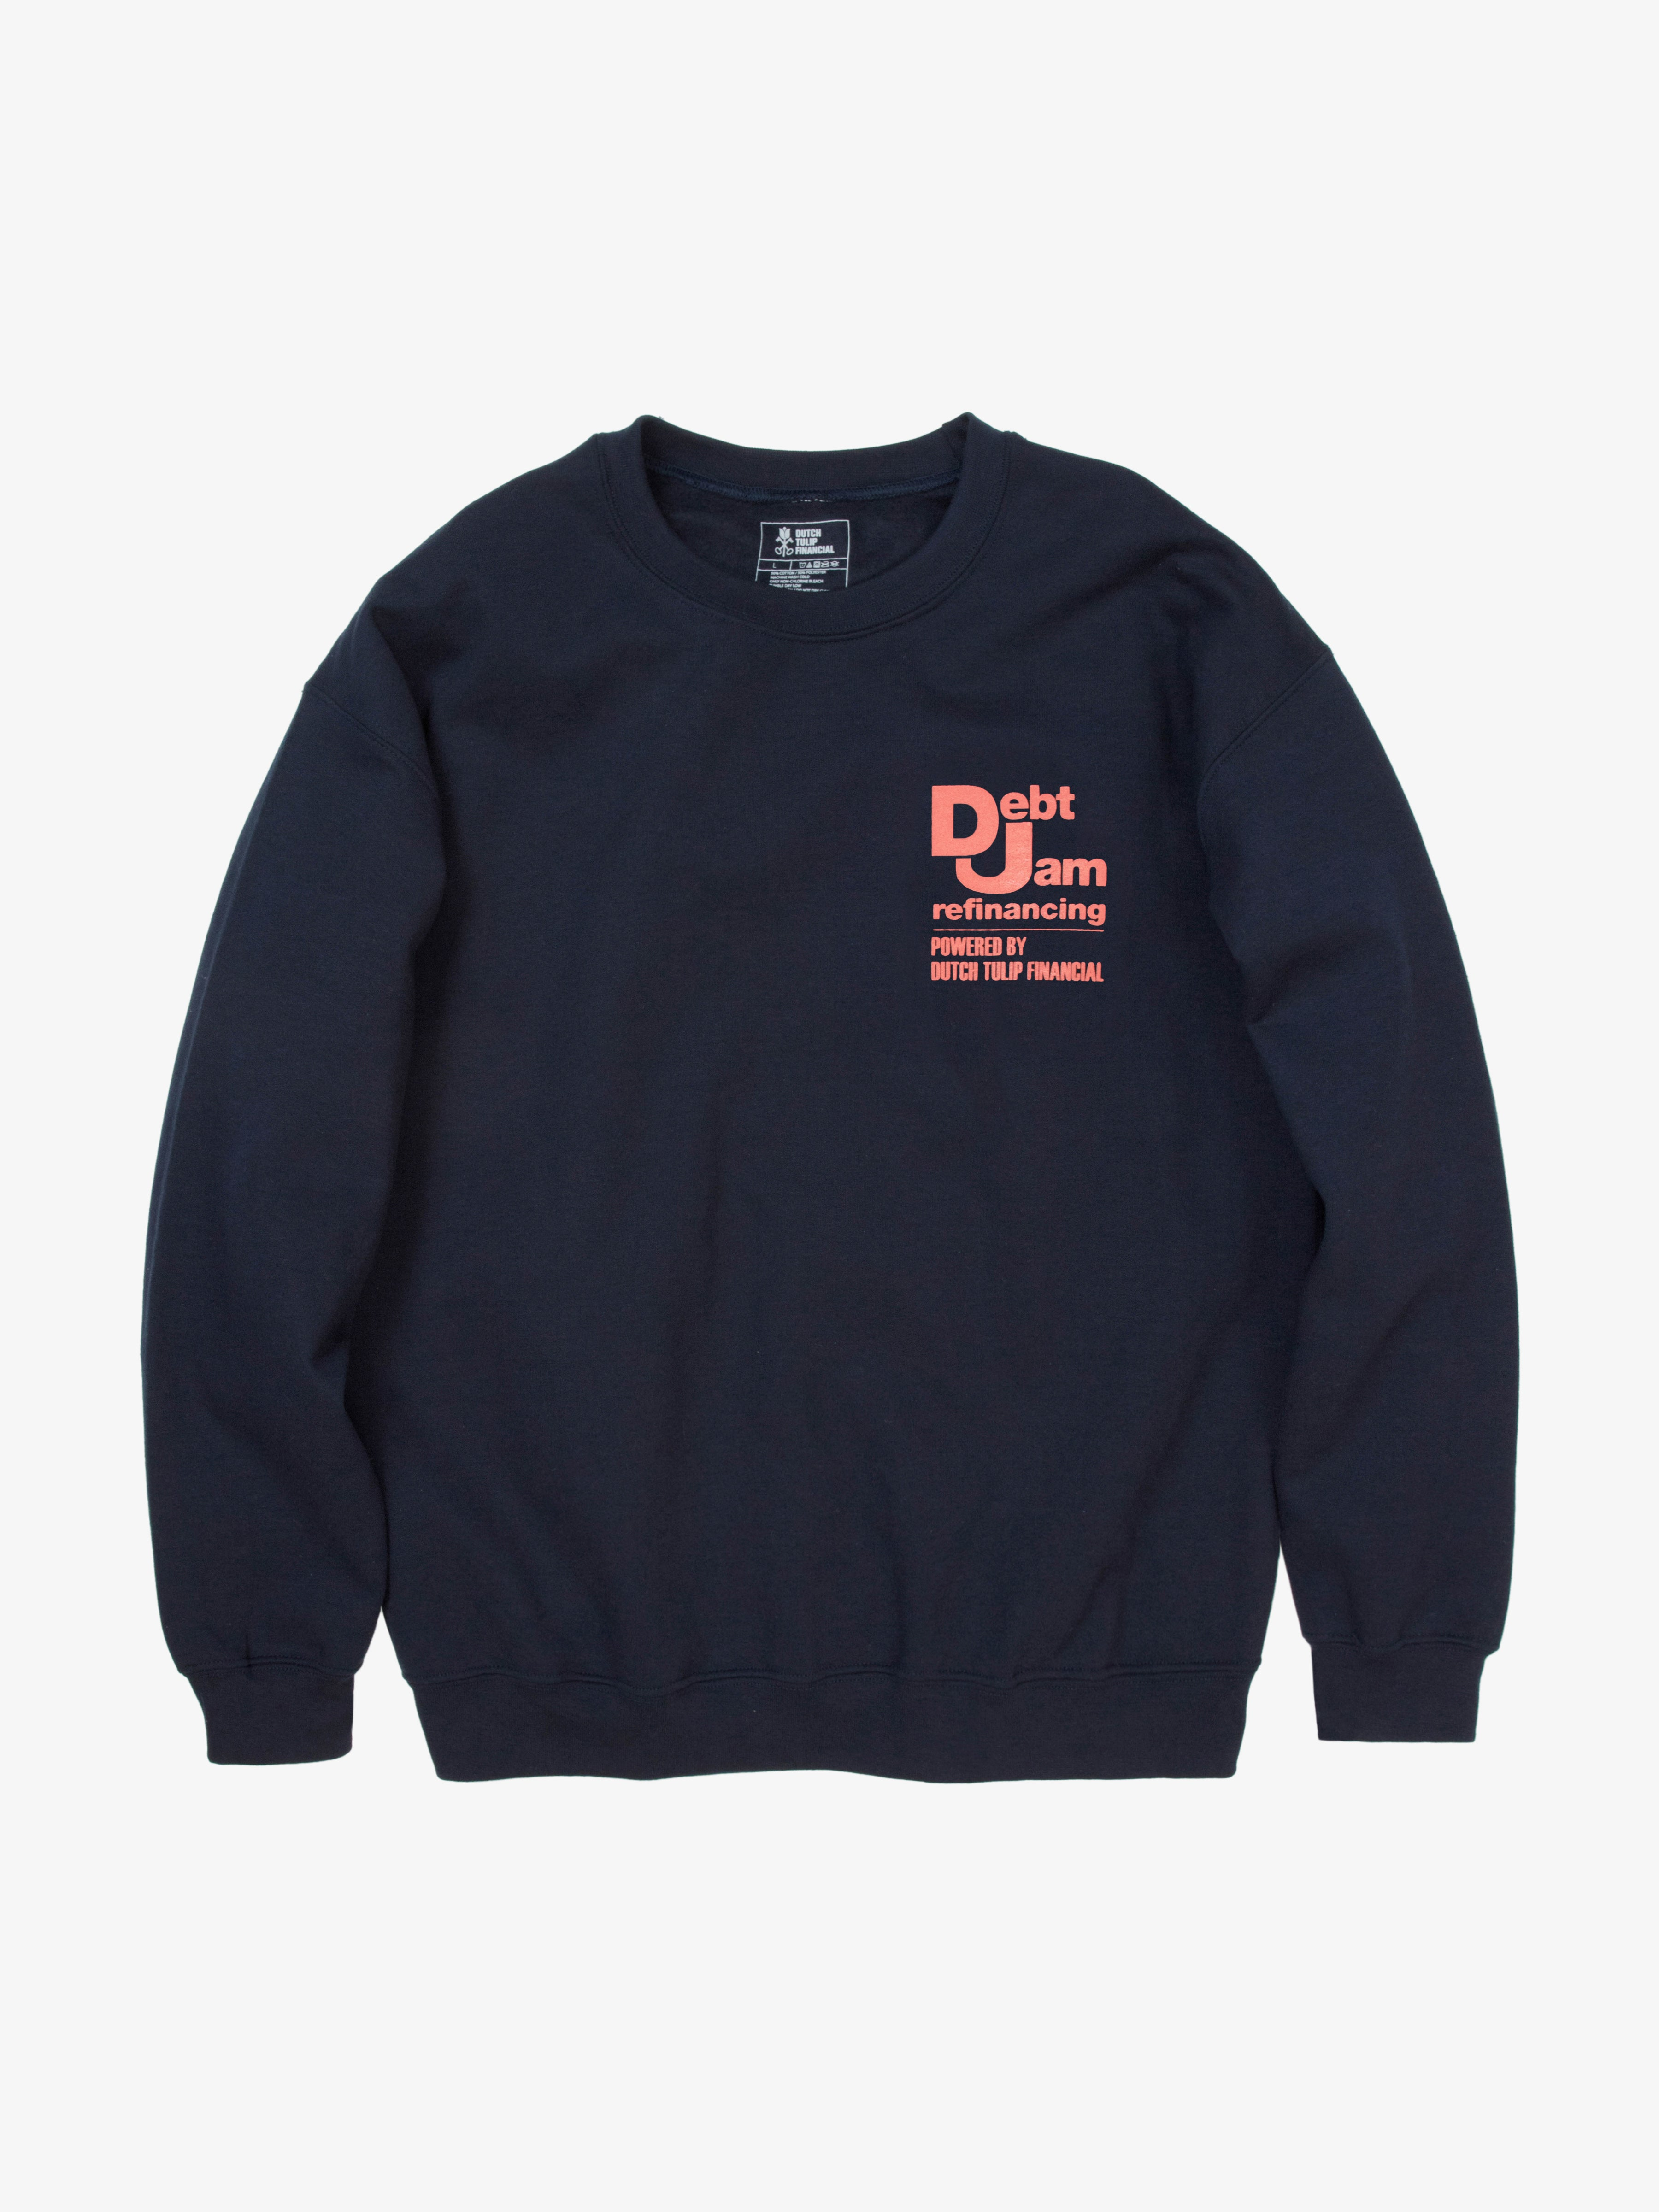 Debt Jam Refinancing Sweatshirt - Navy